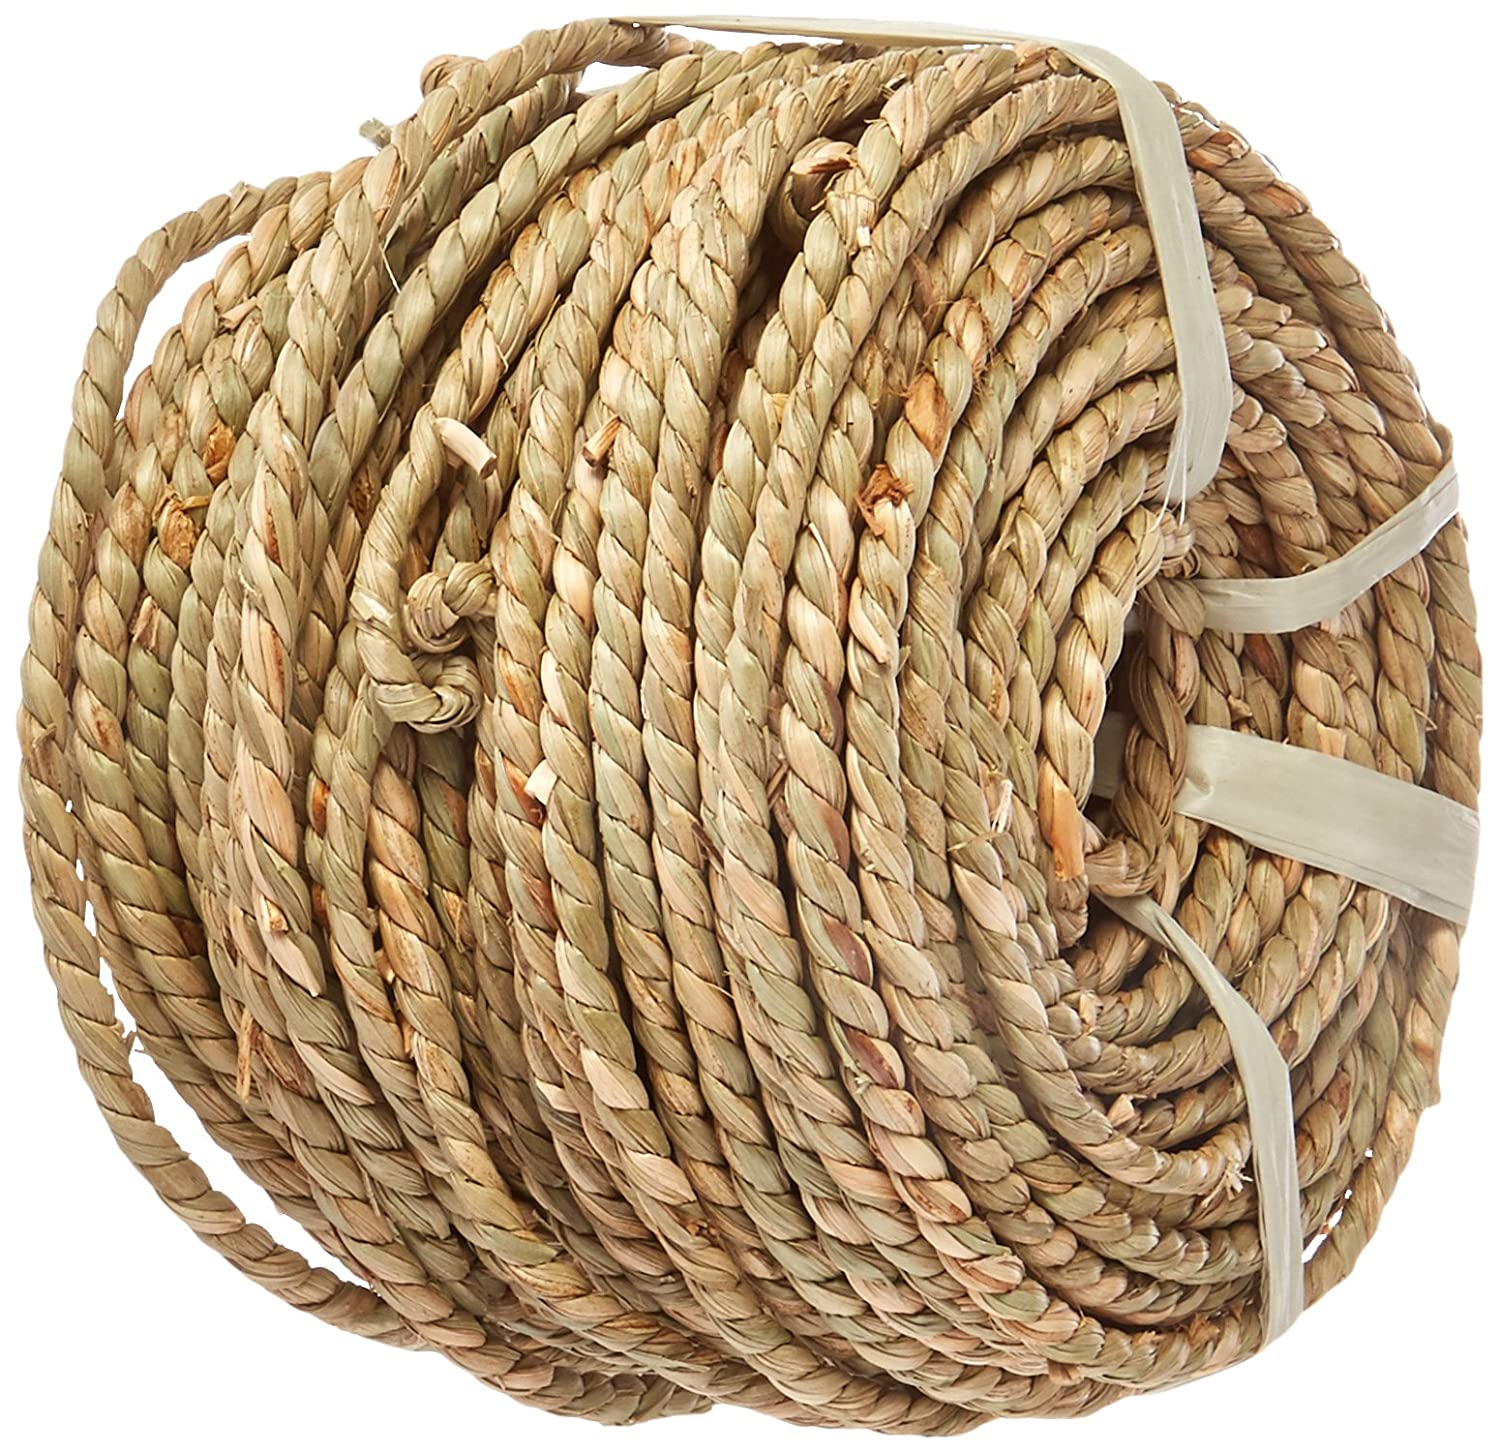 Commonwealth Basket Basketry Sea Grass #3 4-1/2mmx5mm 1-Pound Coil, Approximately 210-Feet SEA3X1